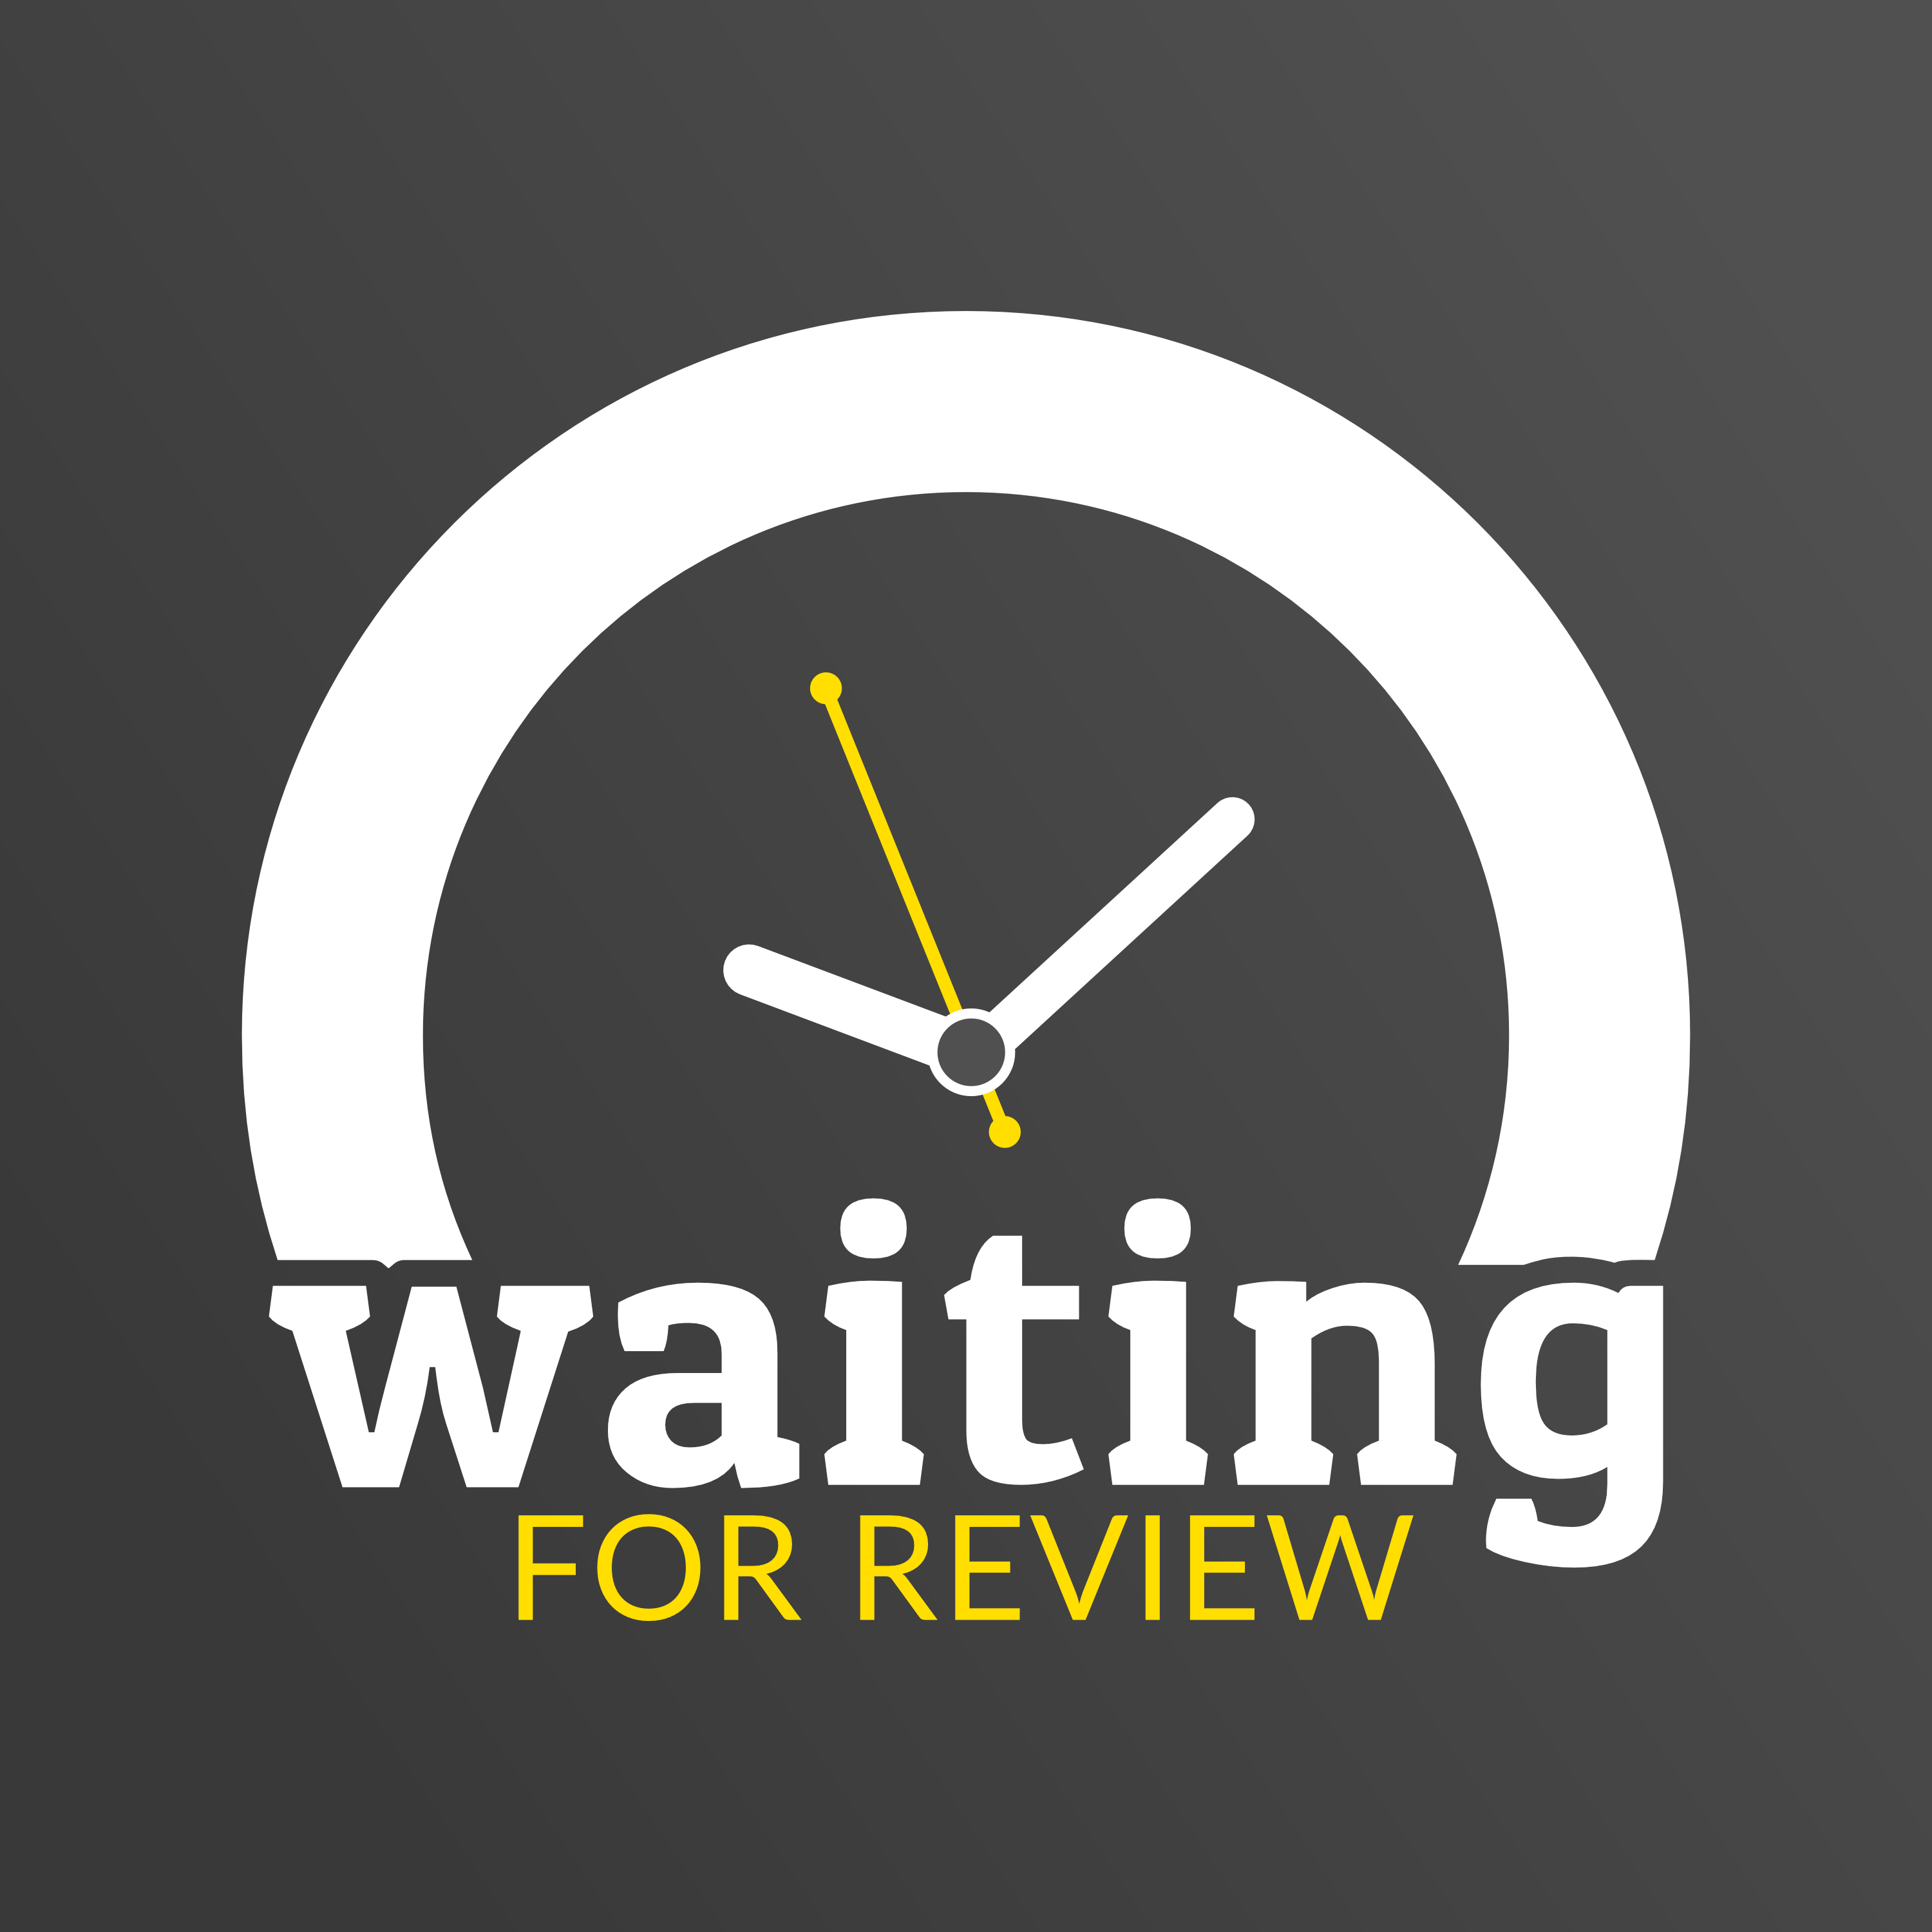 96: So I went to the Apple Store - Waiting For Review : Waiting For